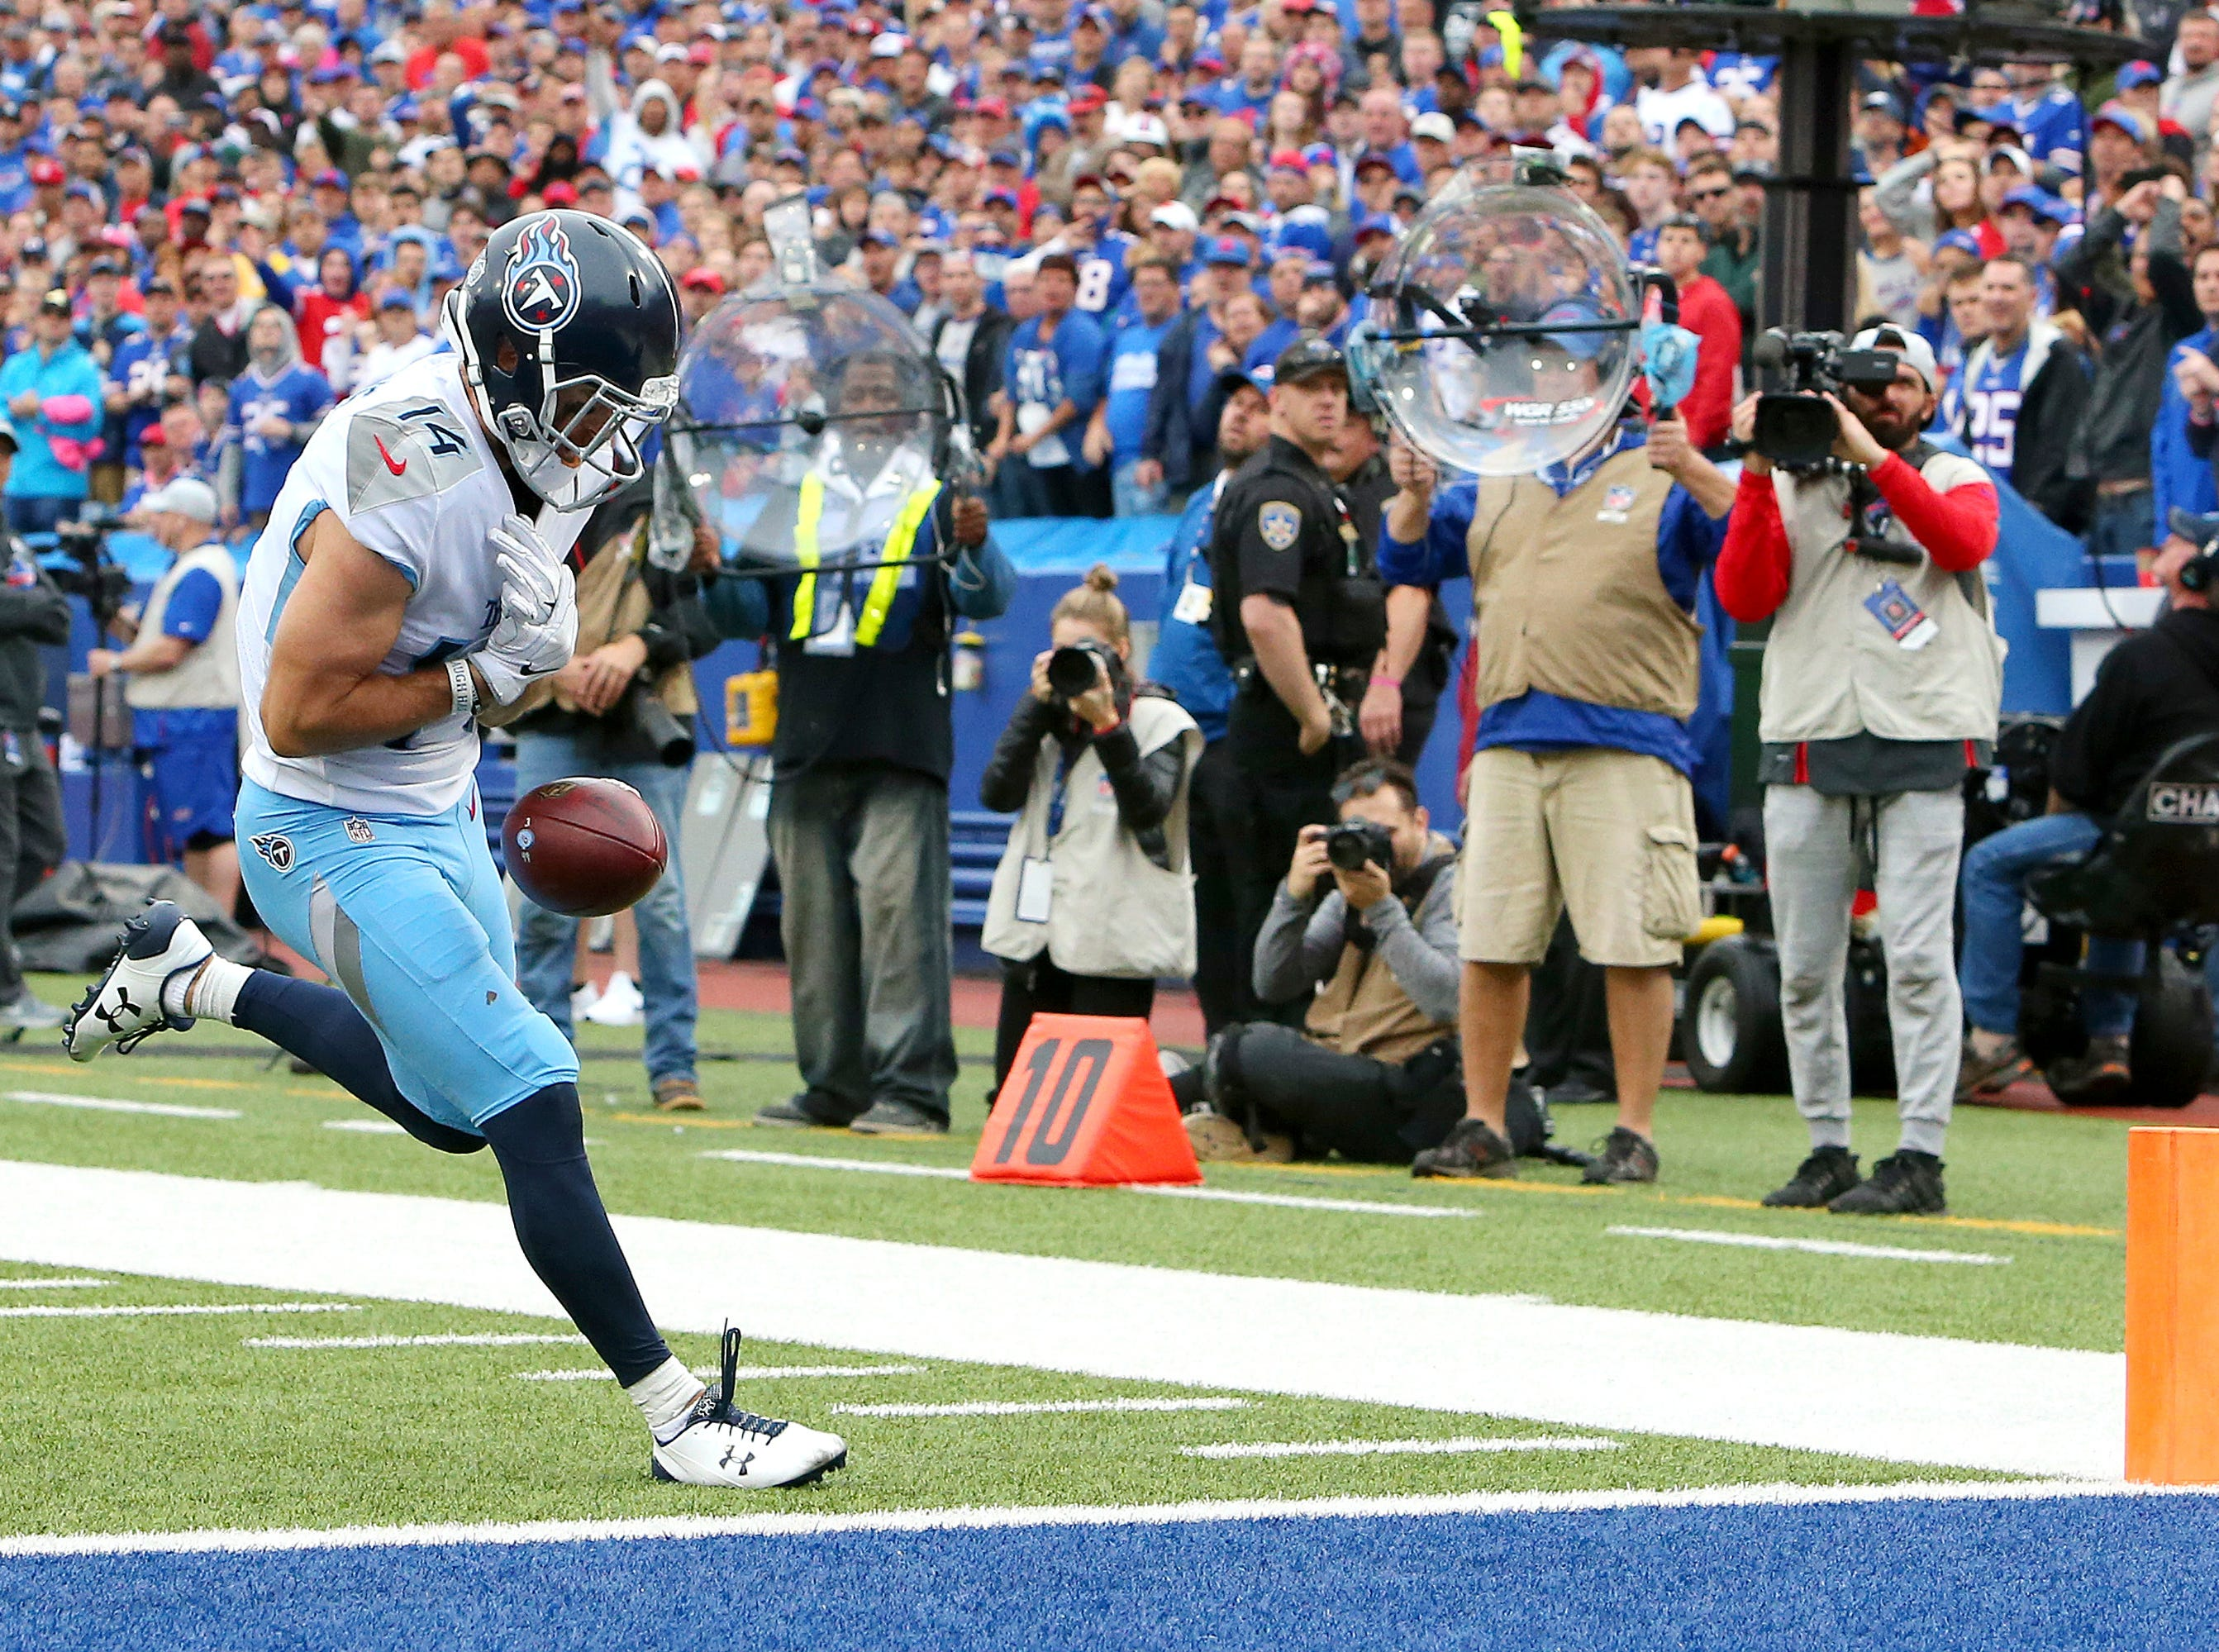 Tennessee Titans wide receiver Nick Williams drops a pass from quarterback Marcus Mariota near the end zone during the second half of an NFL football game against the Buffalo Bills, Sunday, Oct. 7, 2018, in Orchard Park, N.Y. (AP Photo/Jeffrey T. Barnes)